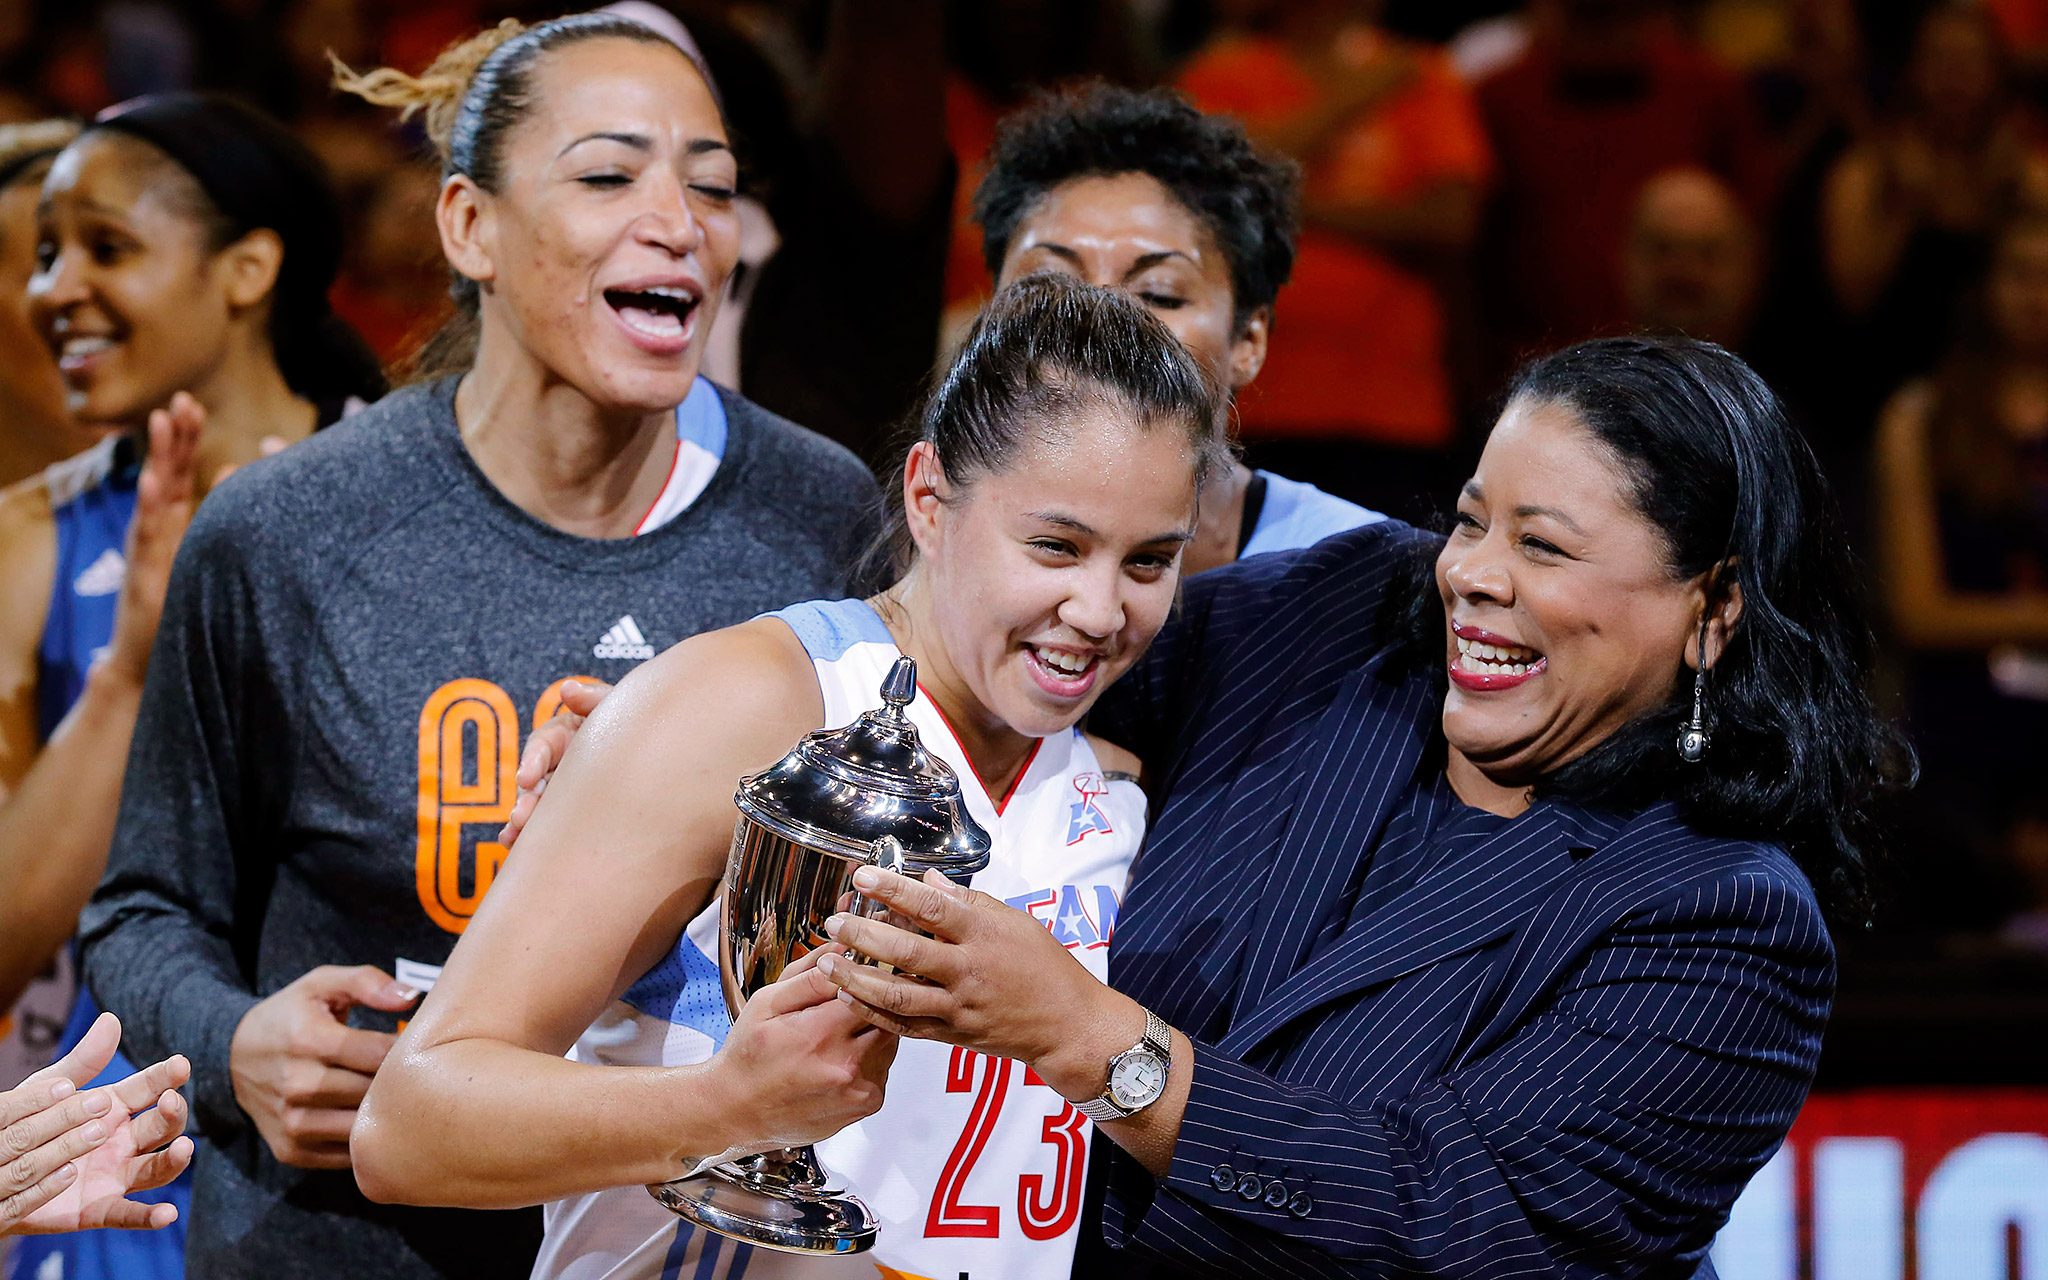 Atlanta's Shoni Schimmel, a rookie who doesn't even start for her own team, is given the MVP trophy by WNBA president Laurel J. Richie after putting on a record-breaking performance -- scoring 29 points to help the East beat the West 125-124 in overtime.